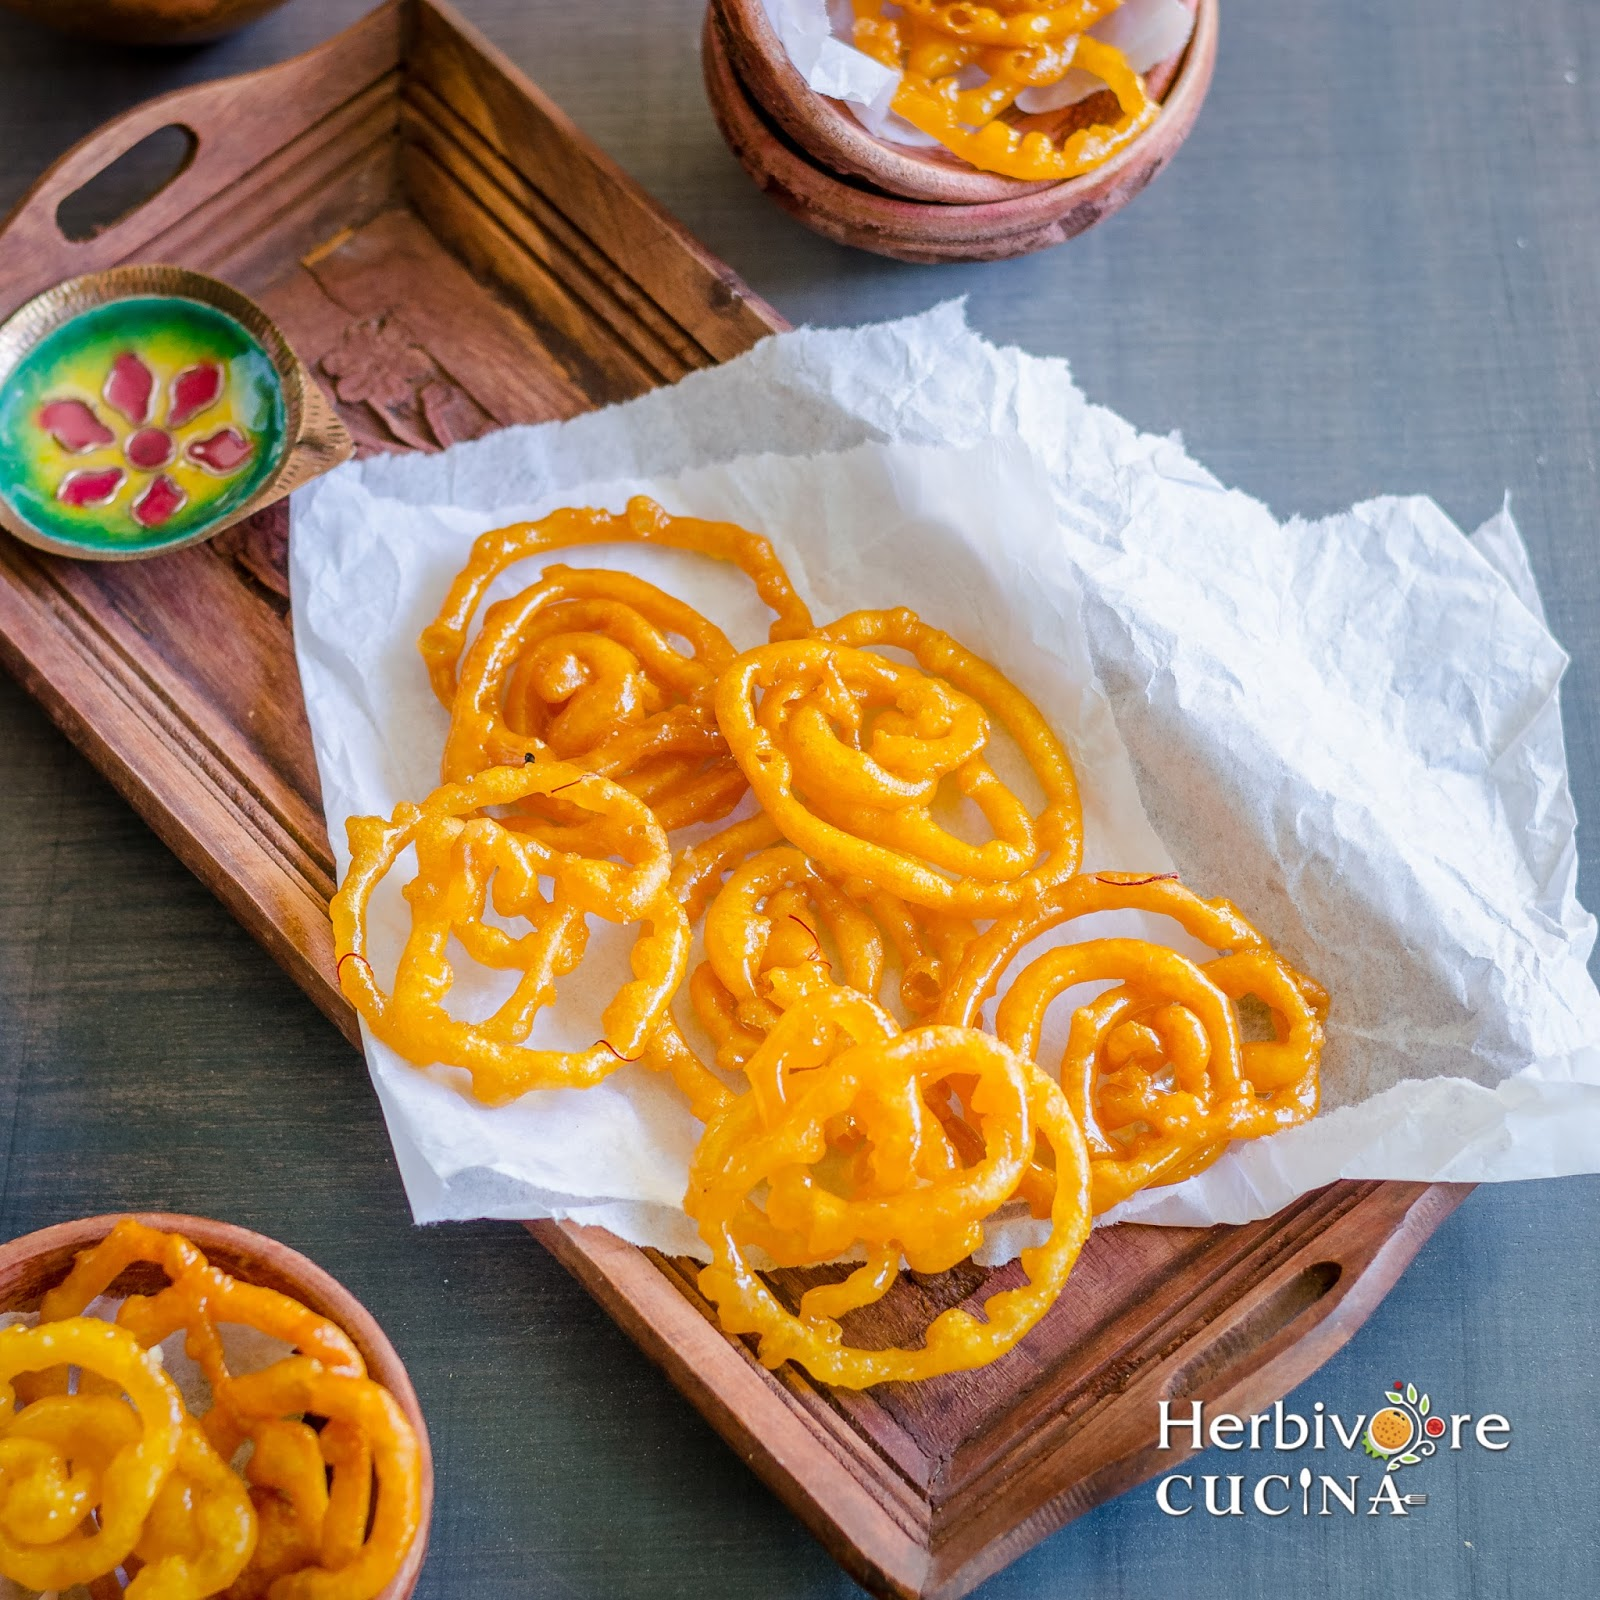 Herbivore cucina the best instant jalebi recipe jalebi those rounds of crispy fried flour dunked in sugar syrup the dessert that everybody enjoys some people dunk it in milk some in rabdi and the rest forumfinder Image collections